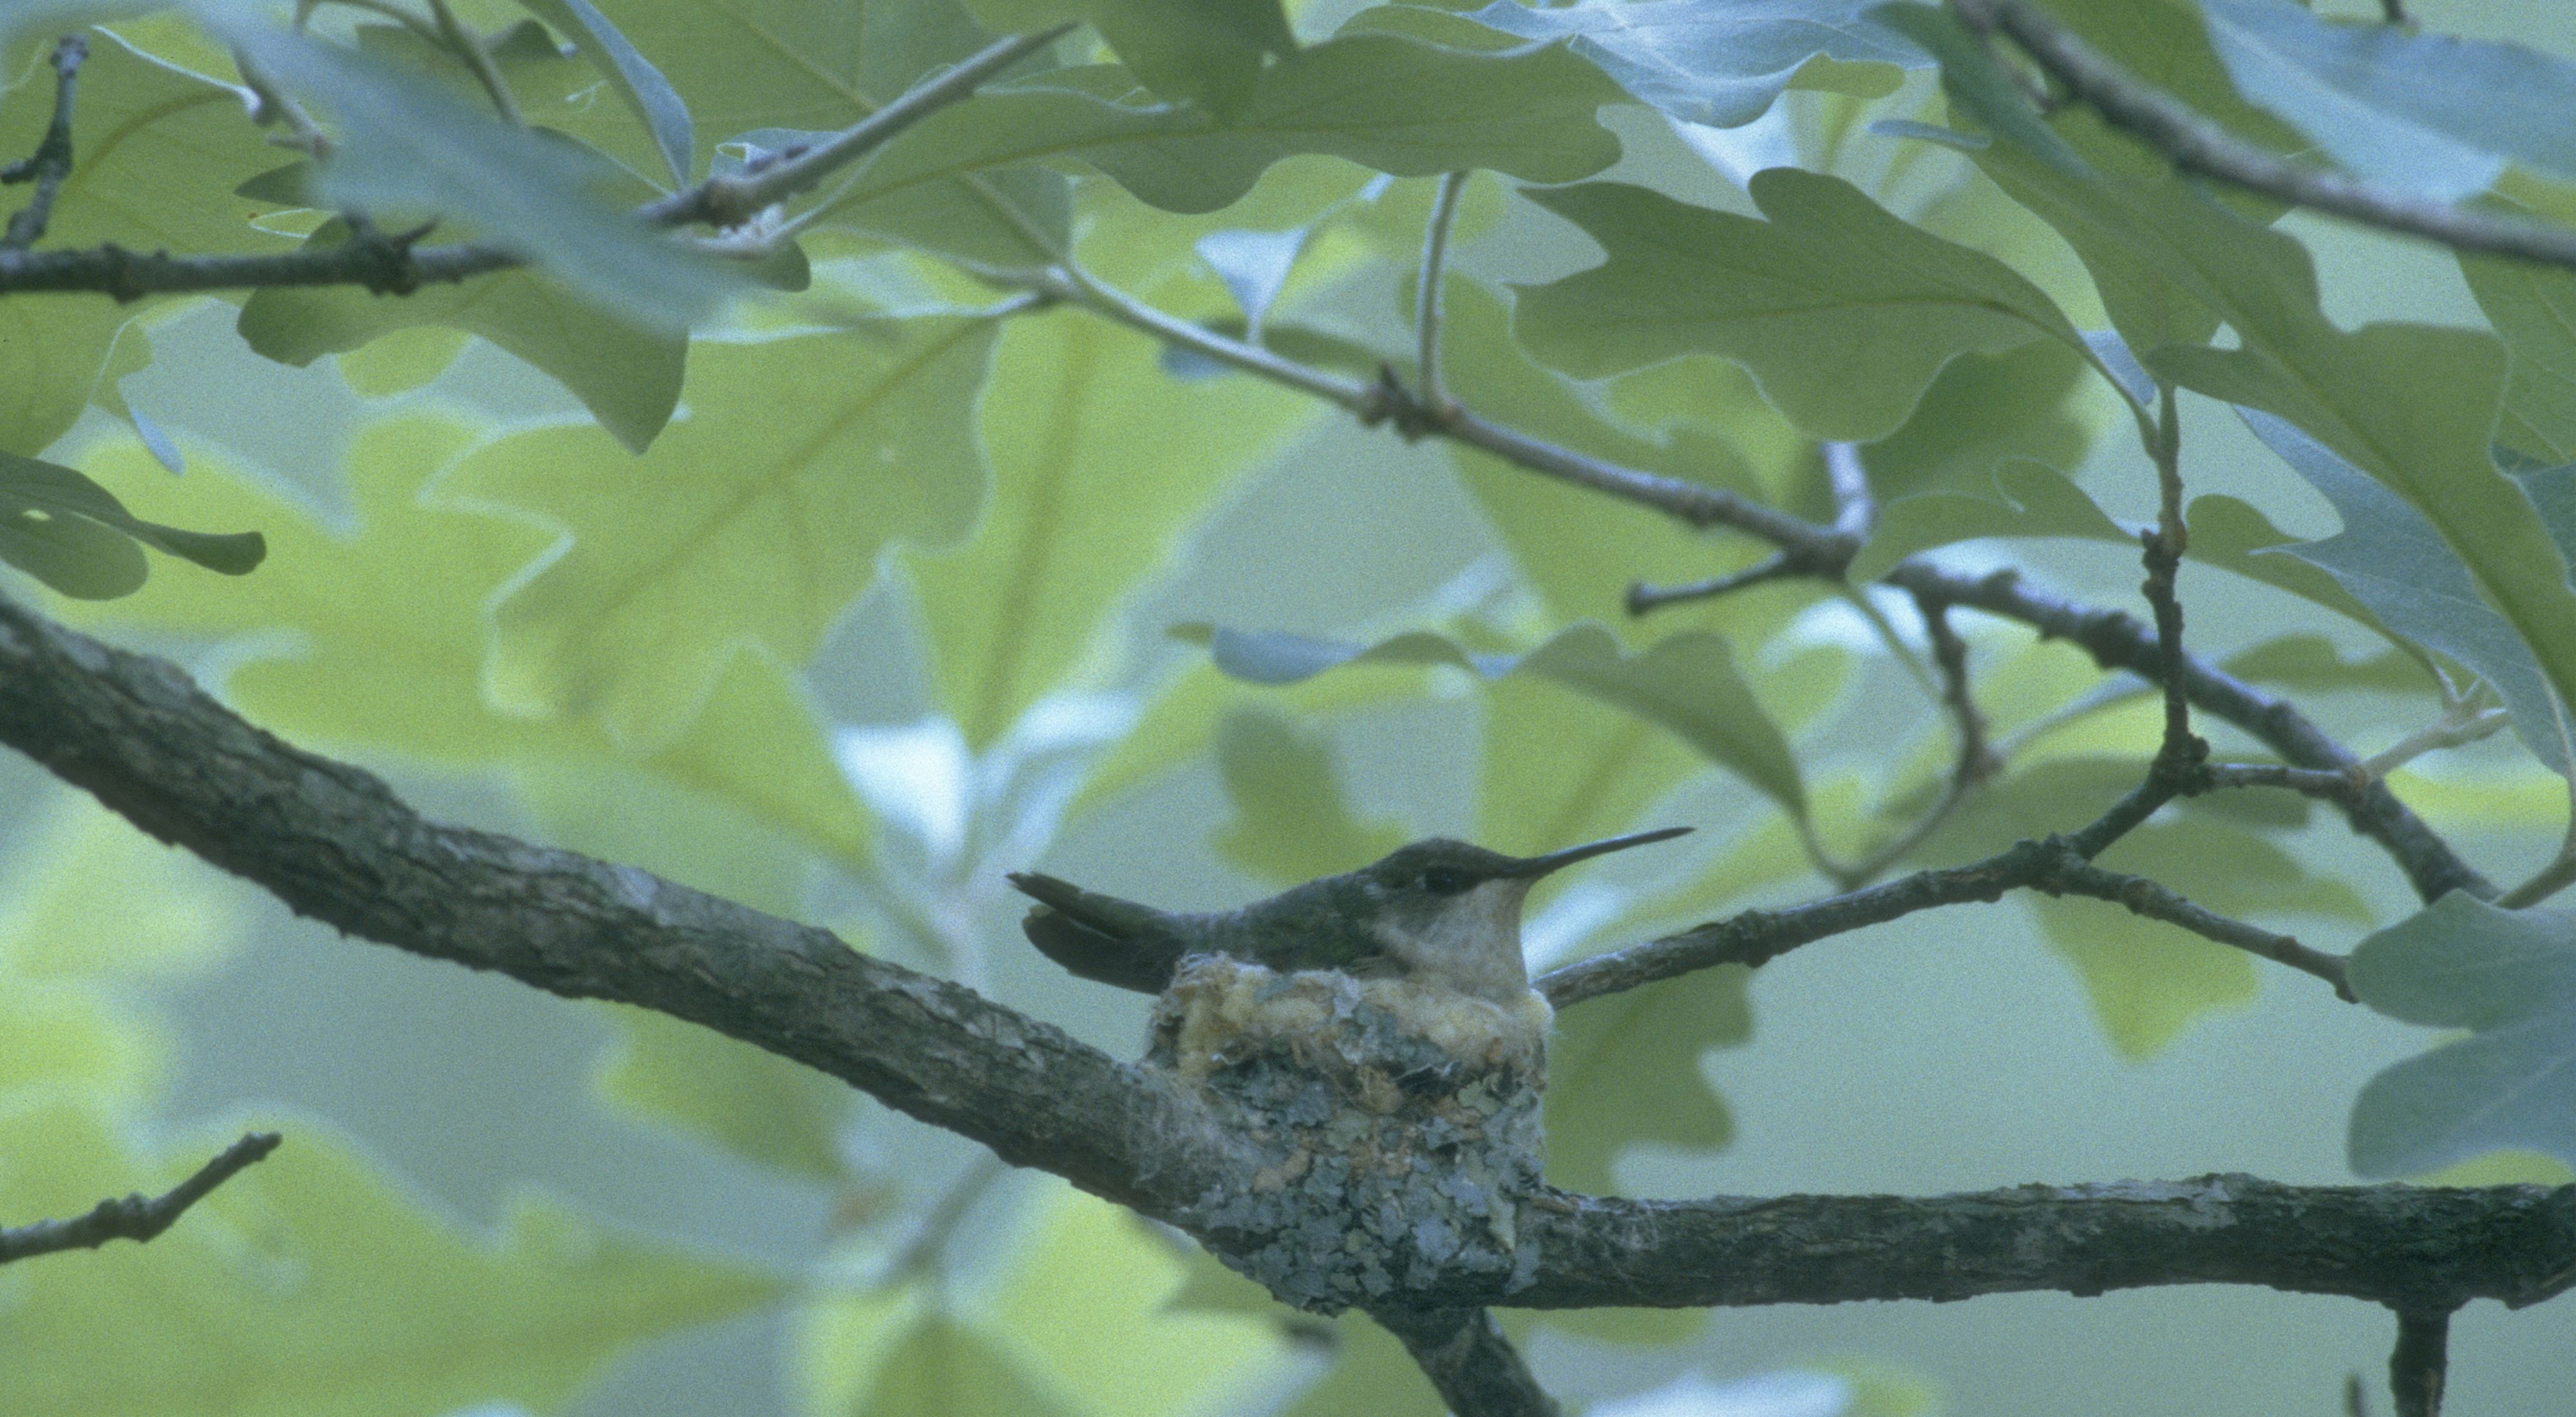 A tiny hummingbird sits in a nest cemented onto an oak tree branch.